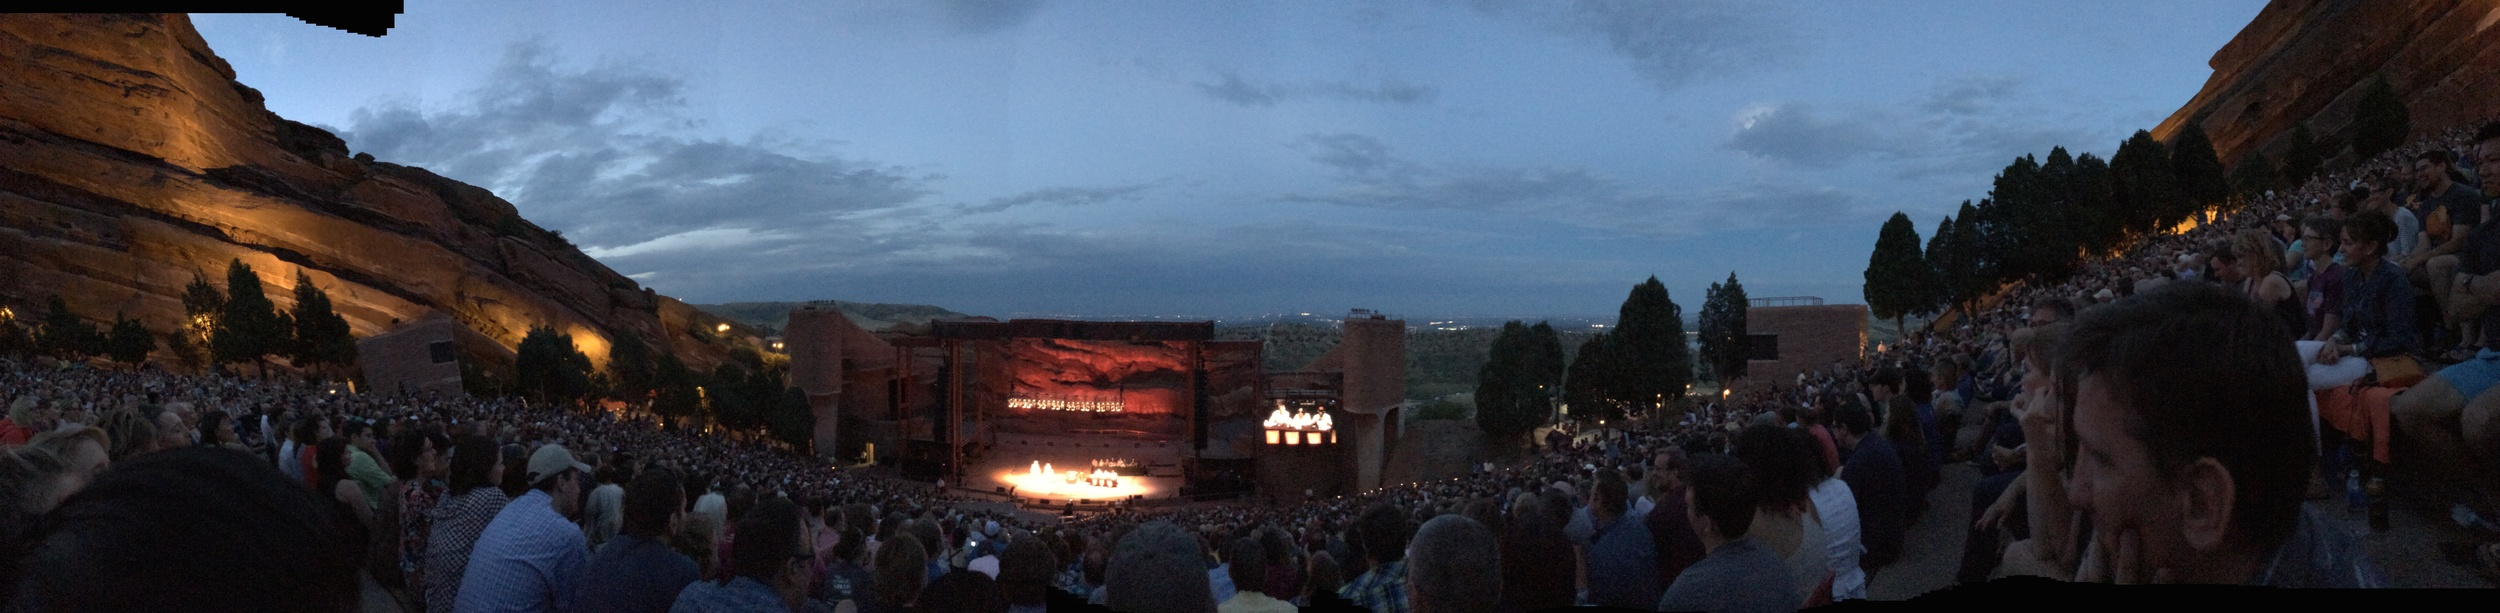 "A night at Red Rock Amphitheater with NPR's ""Wait Wait Don't Tell Me""."